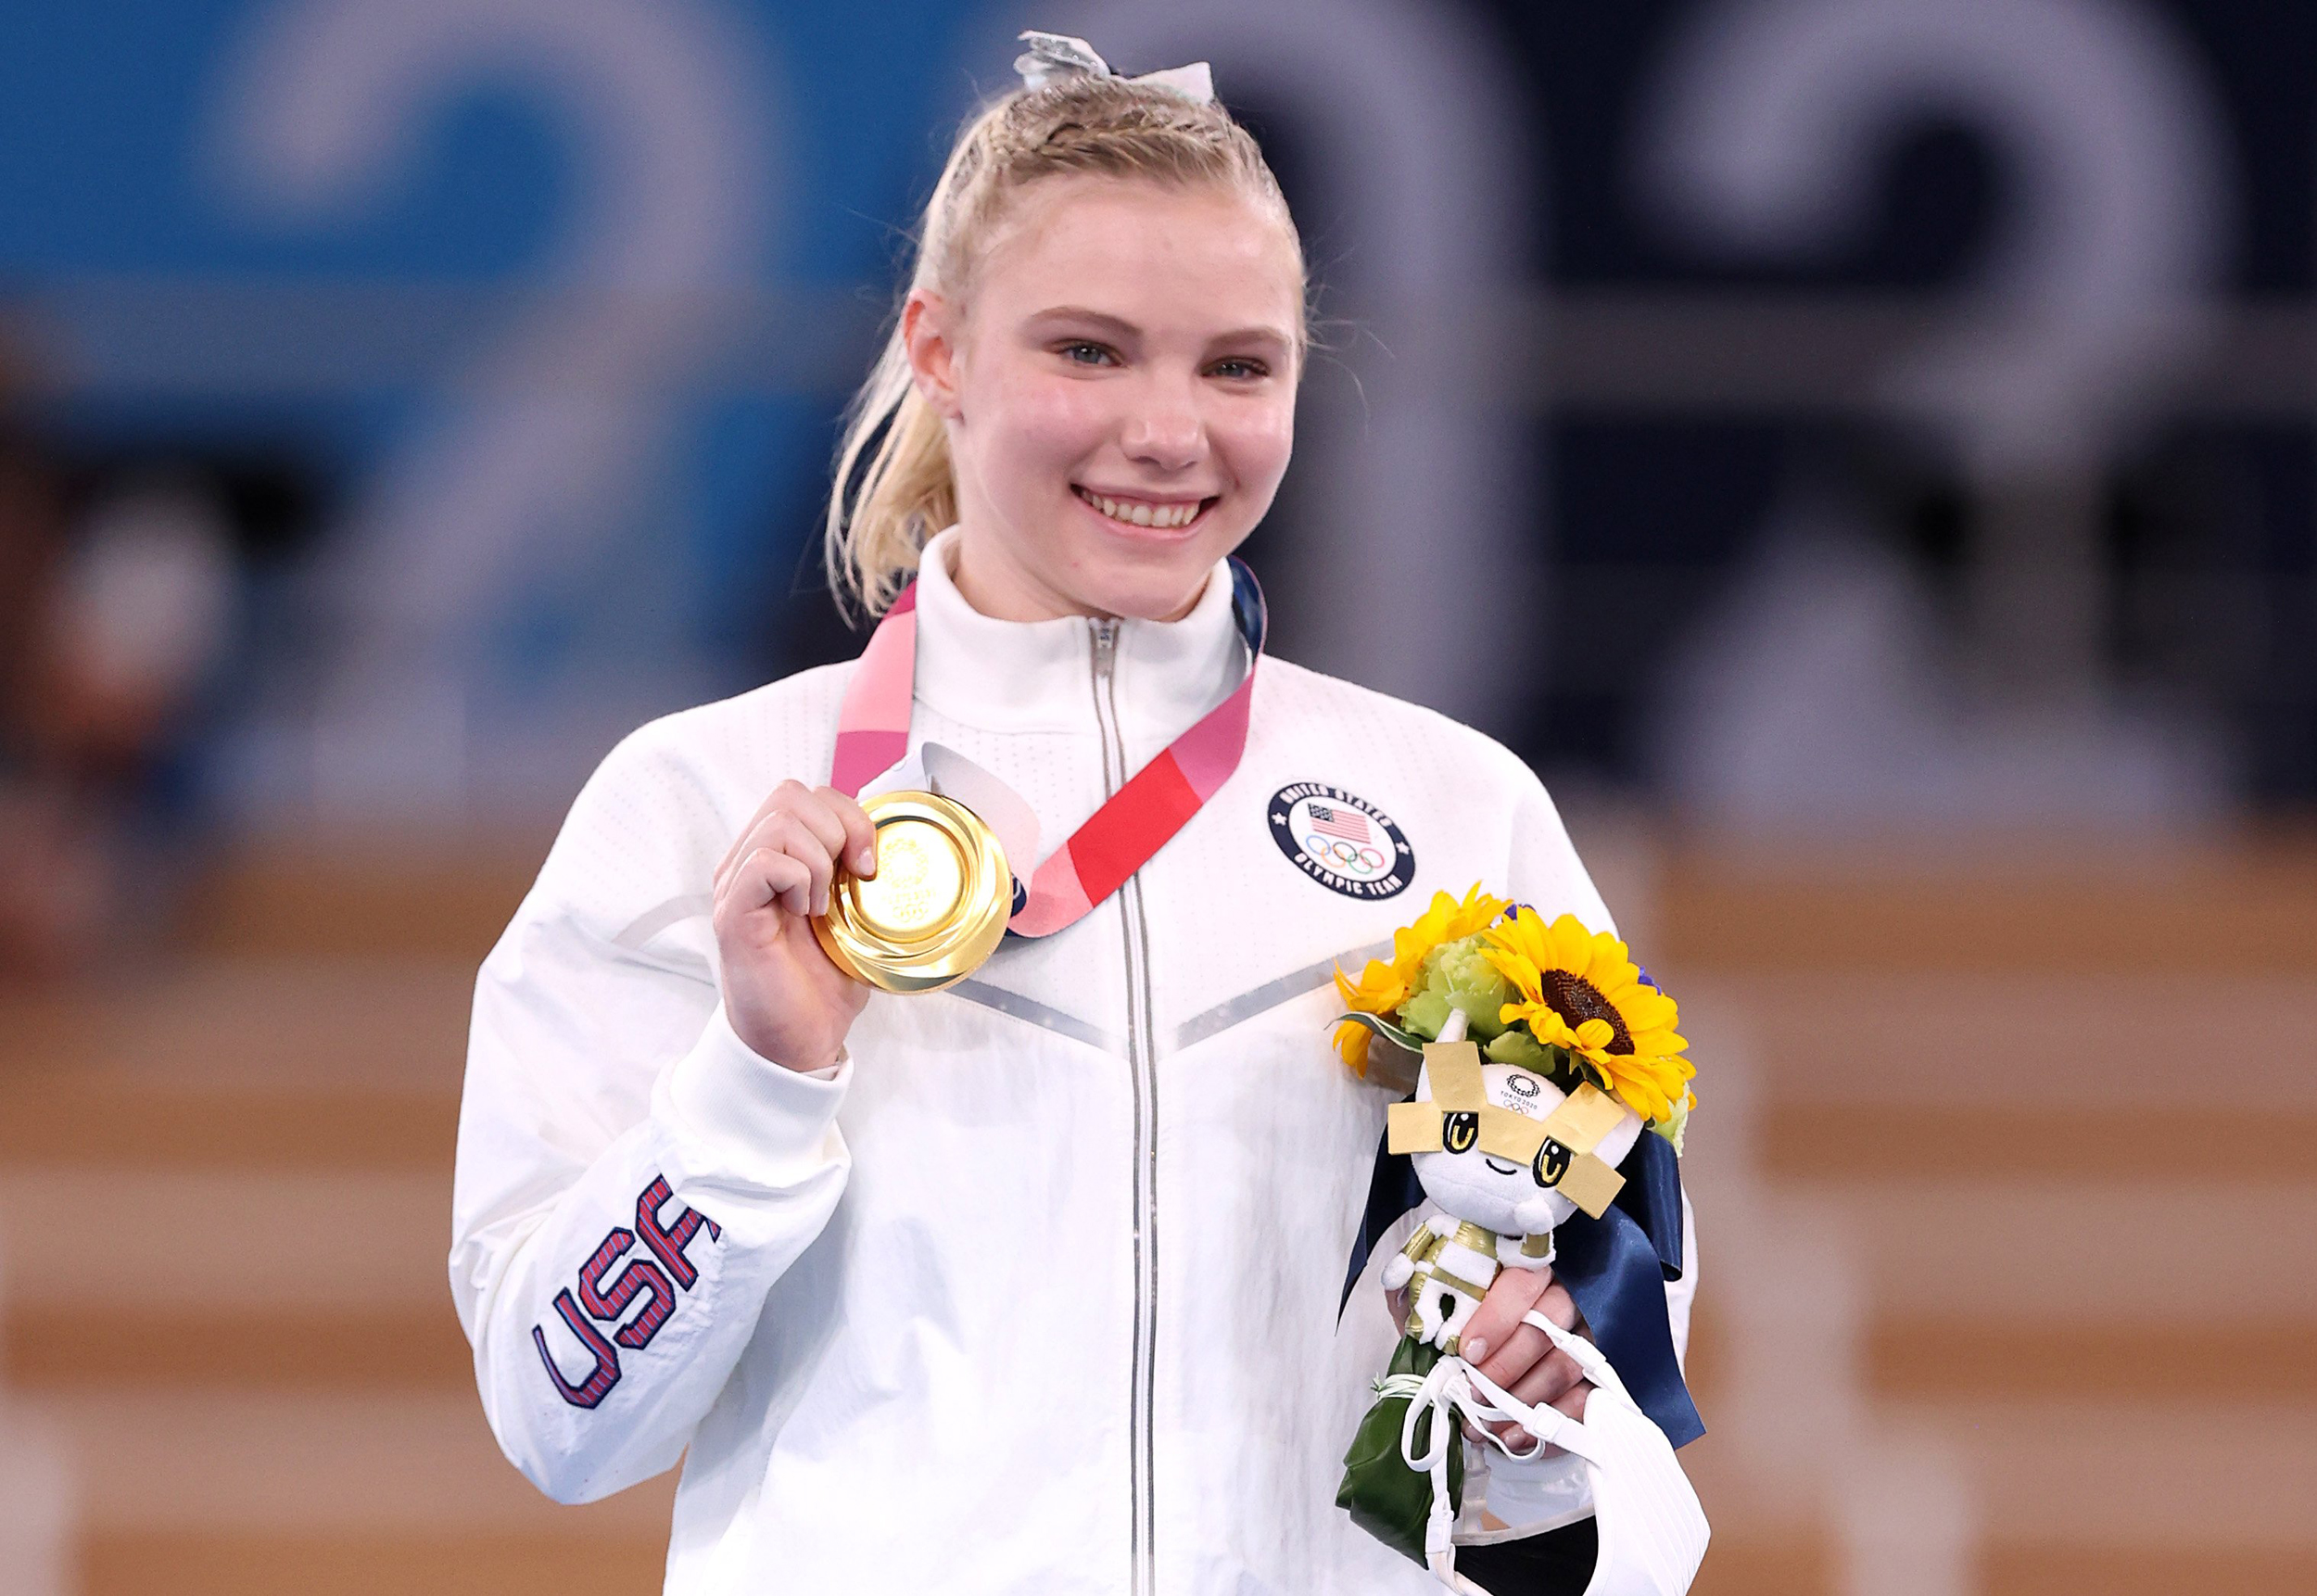 Team USA gymnast Jade Carey wins Olympic gold in floor exercise final